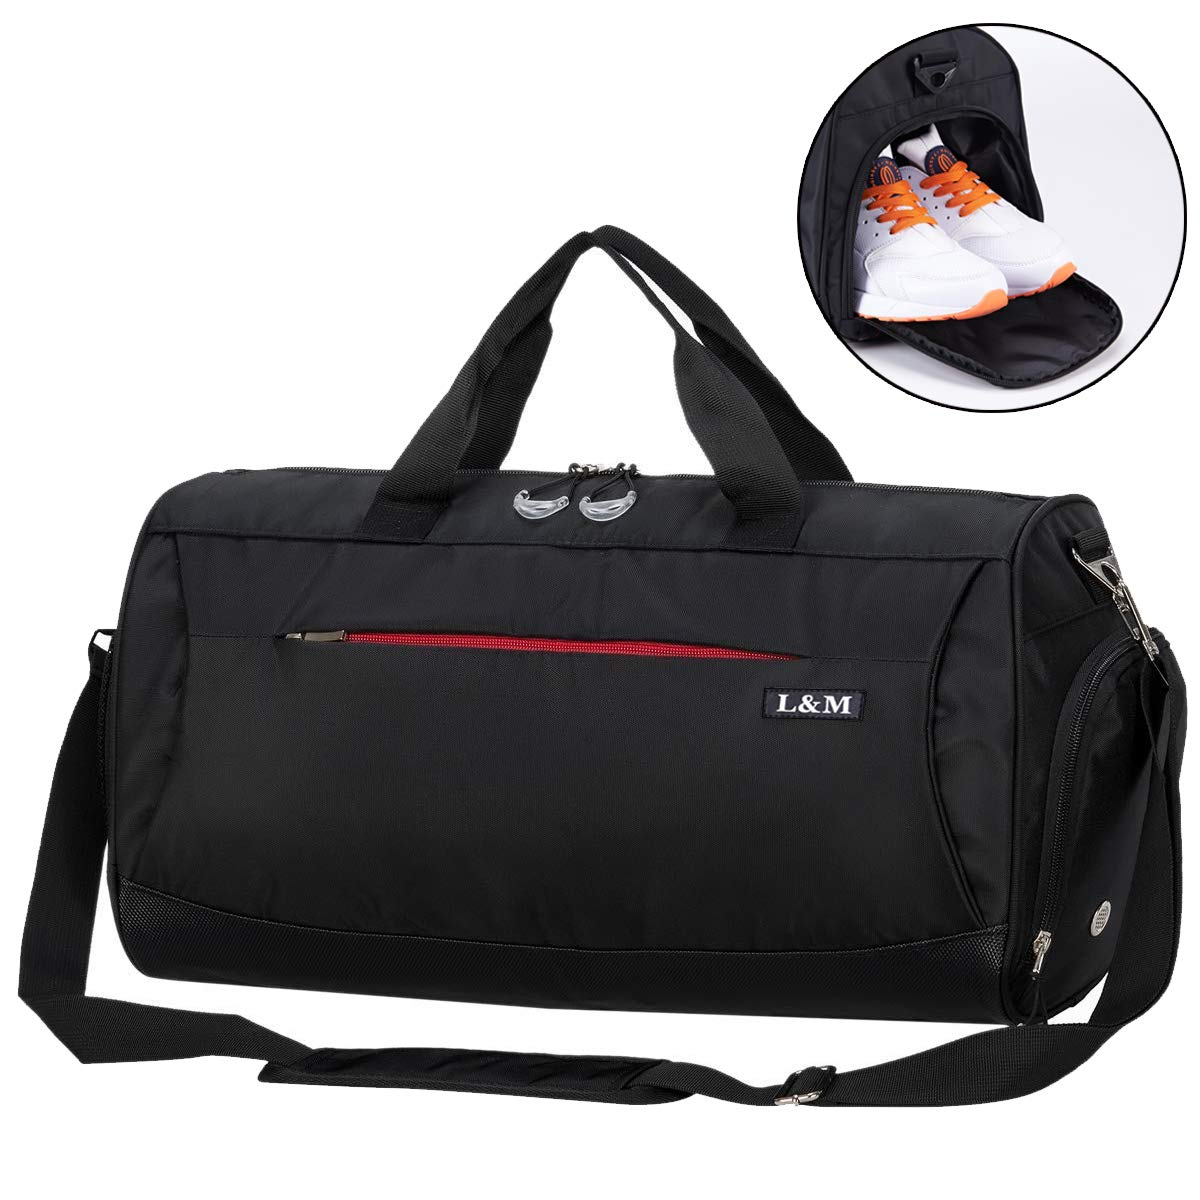 f6733536d562 CoCoMall Sports Gym Bag with Shoes Compartment and Wet Pocket ...